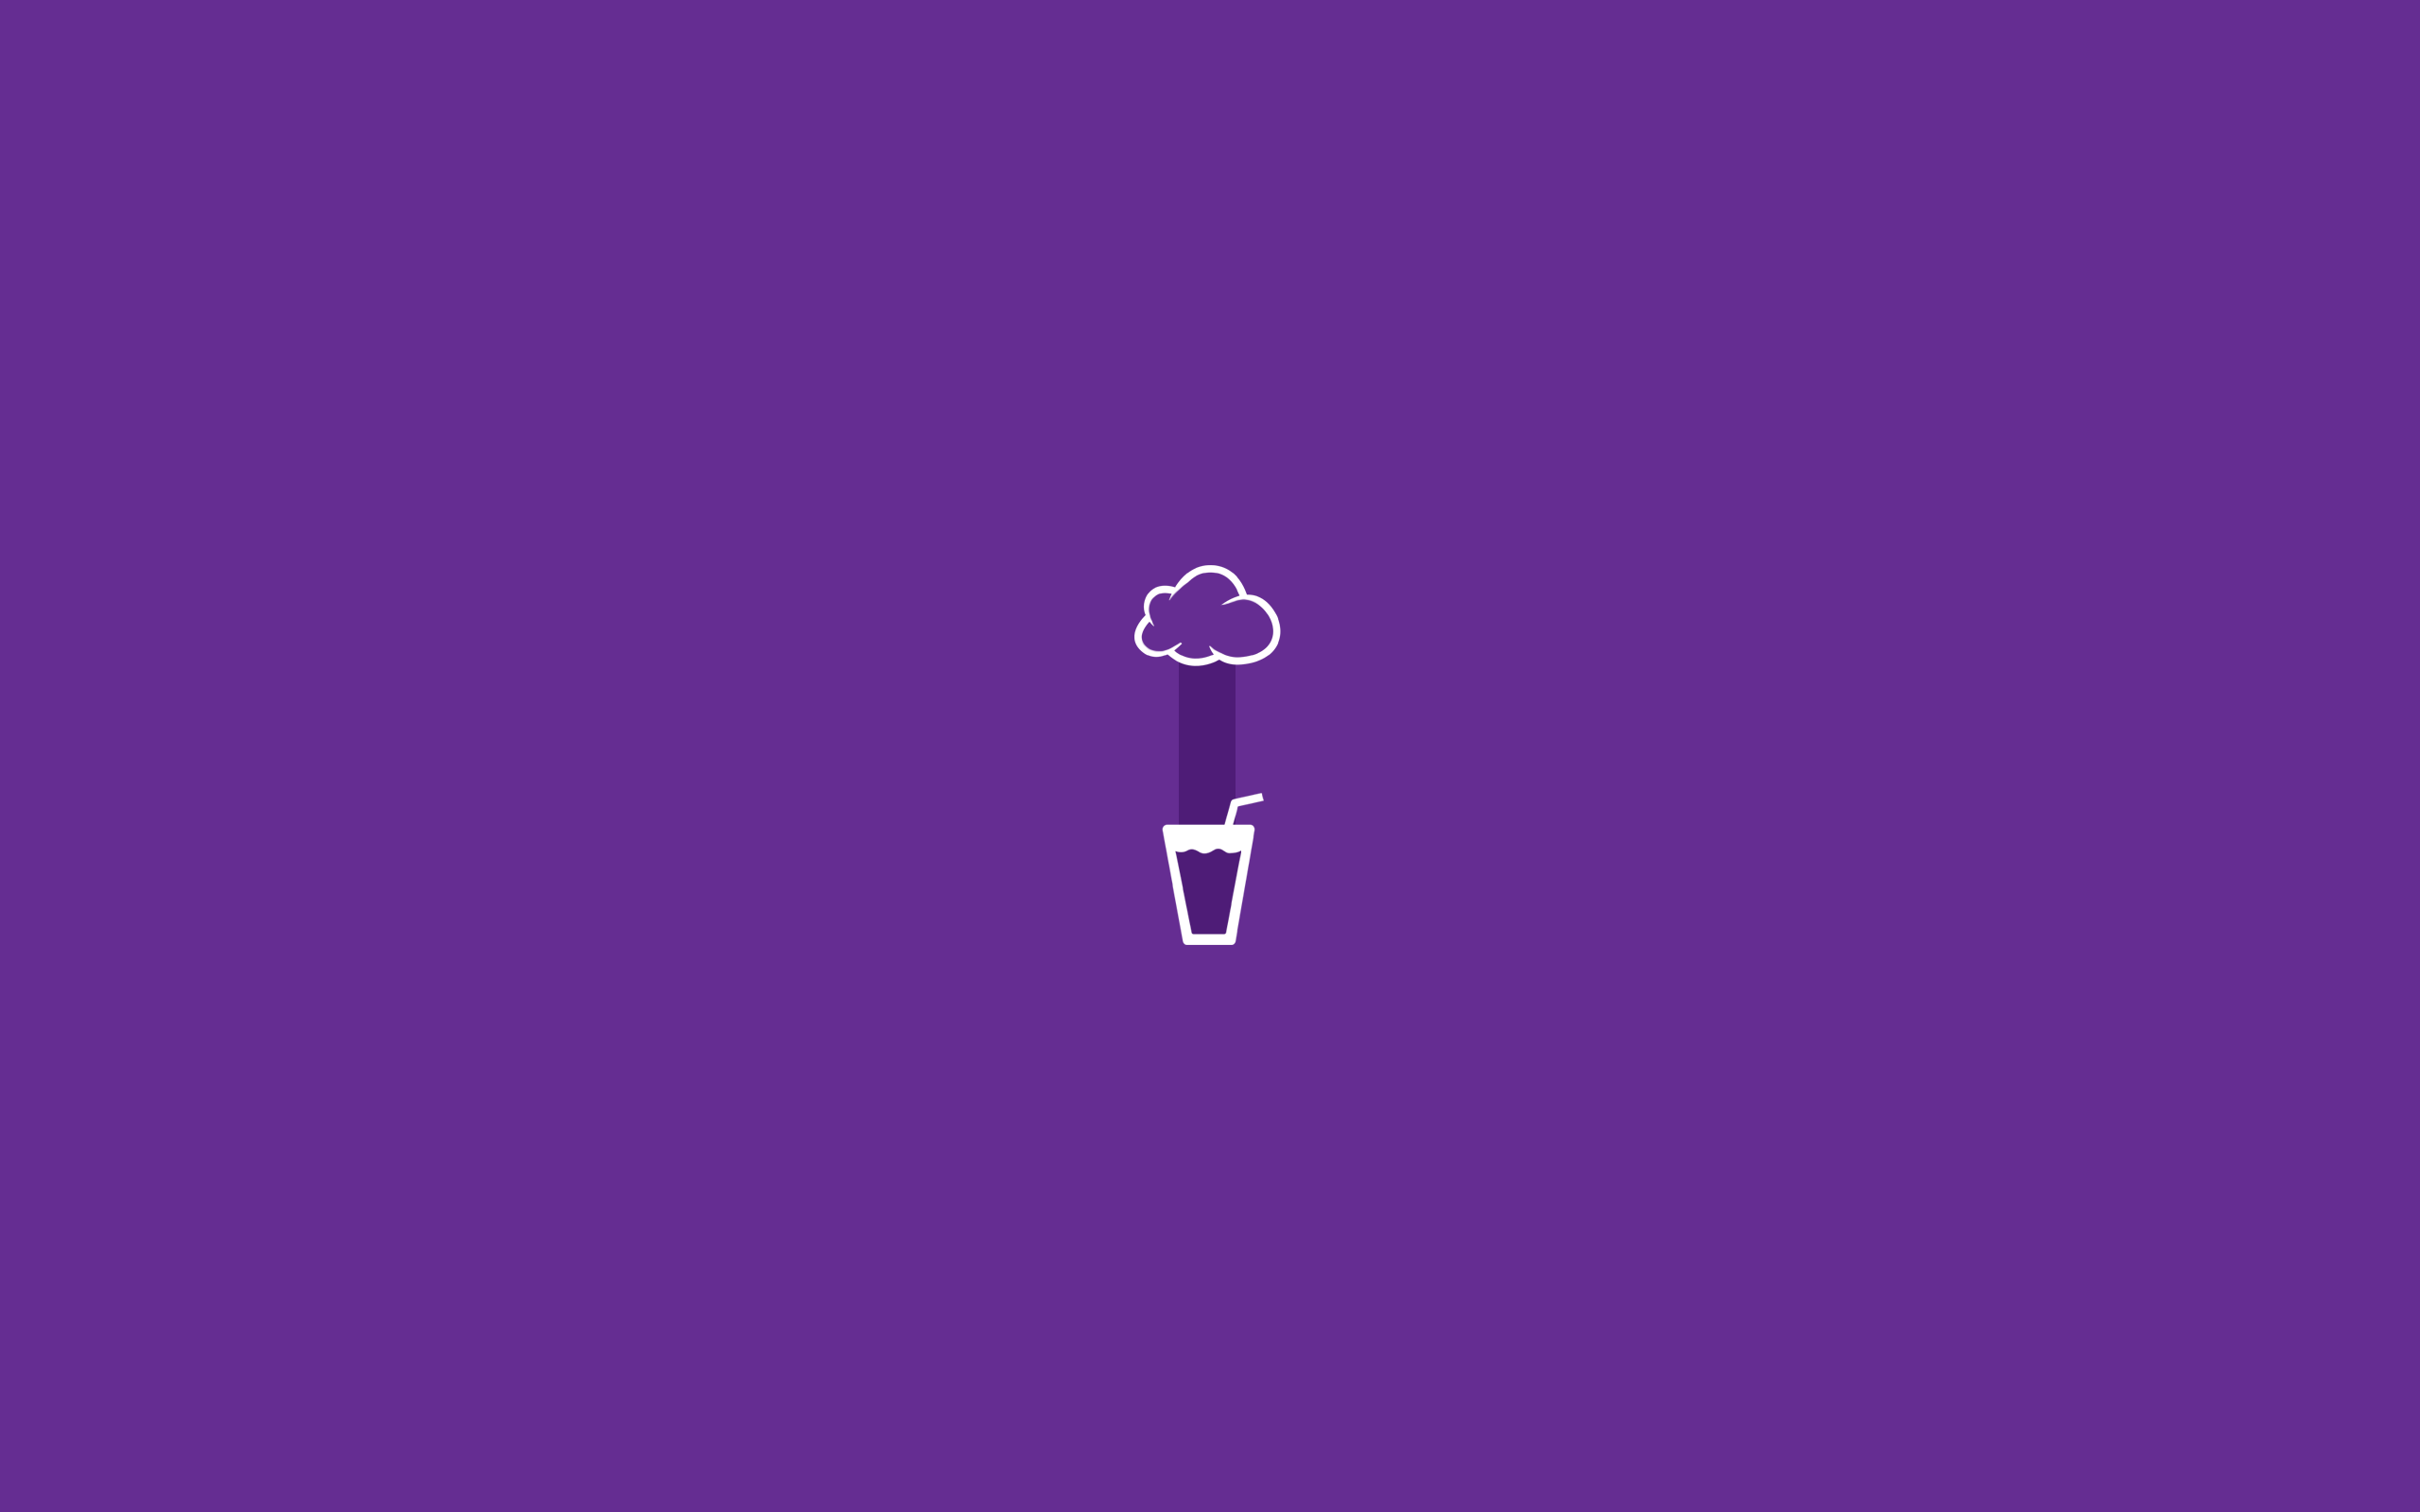 40 High Resolution Wallpapers for Minimalist Lovers   icanbecreative 2560x1600